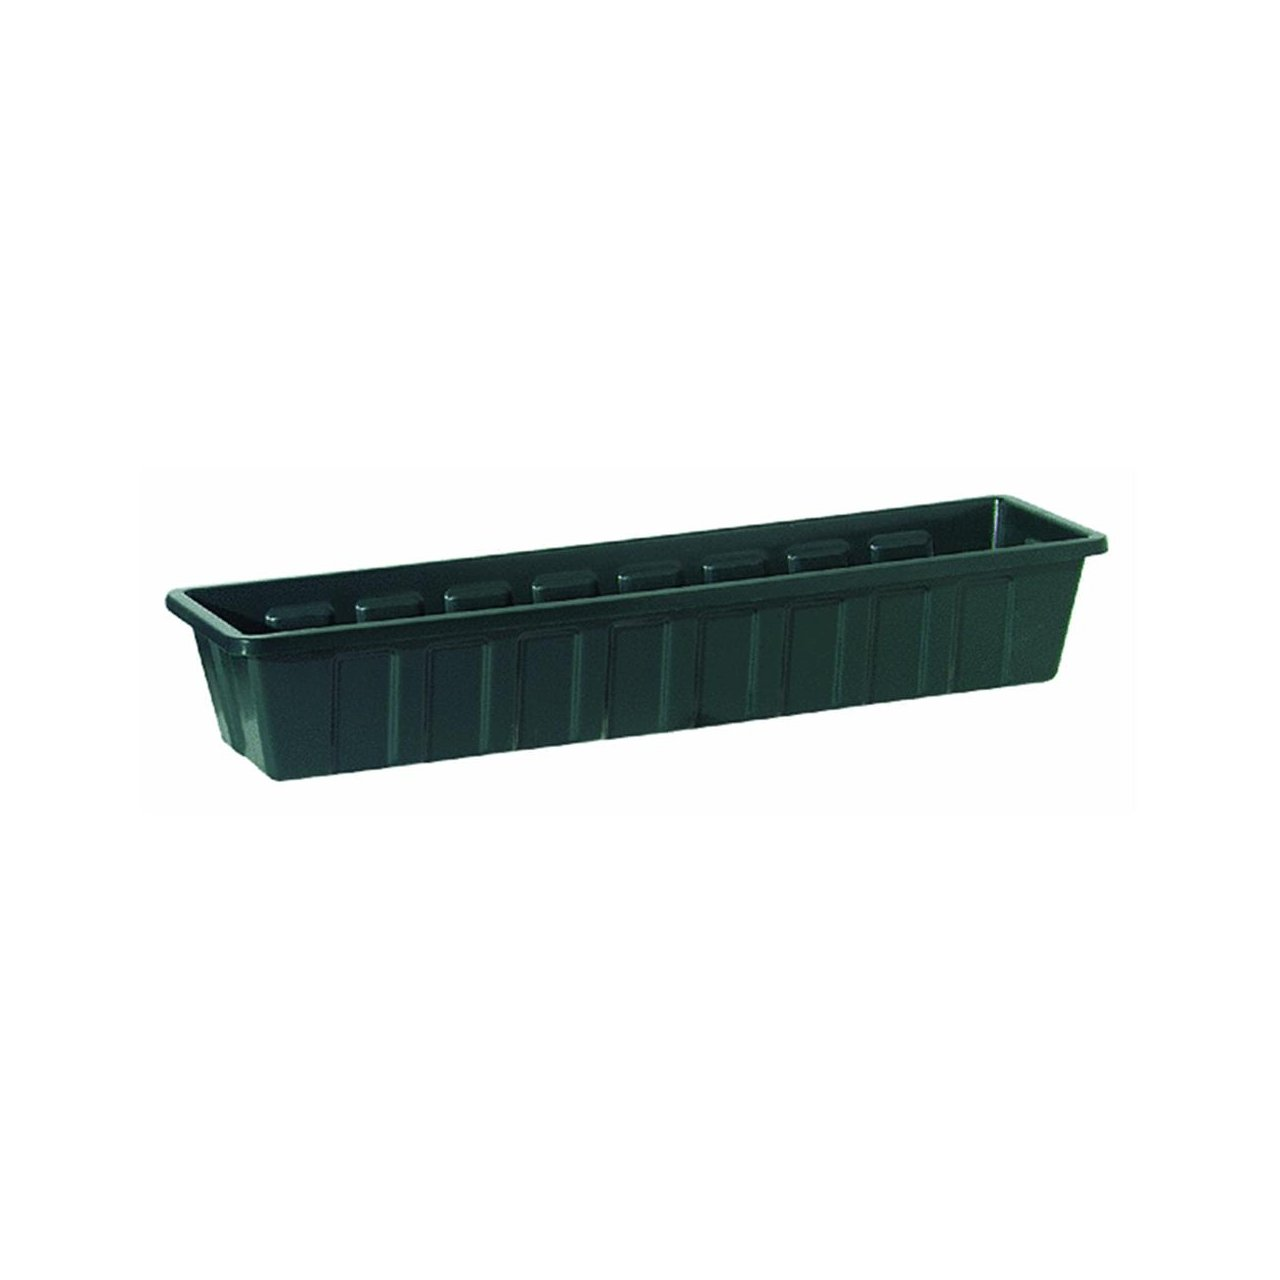 Polly Pro Rectangular Window Box Set of 2 Color Dark Green, Size 5 H x 8 W x 18 D